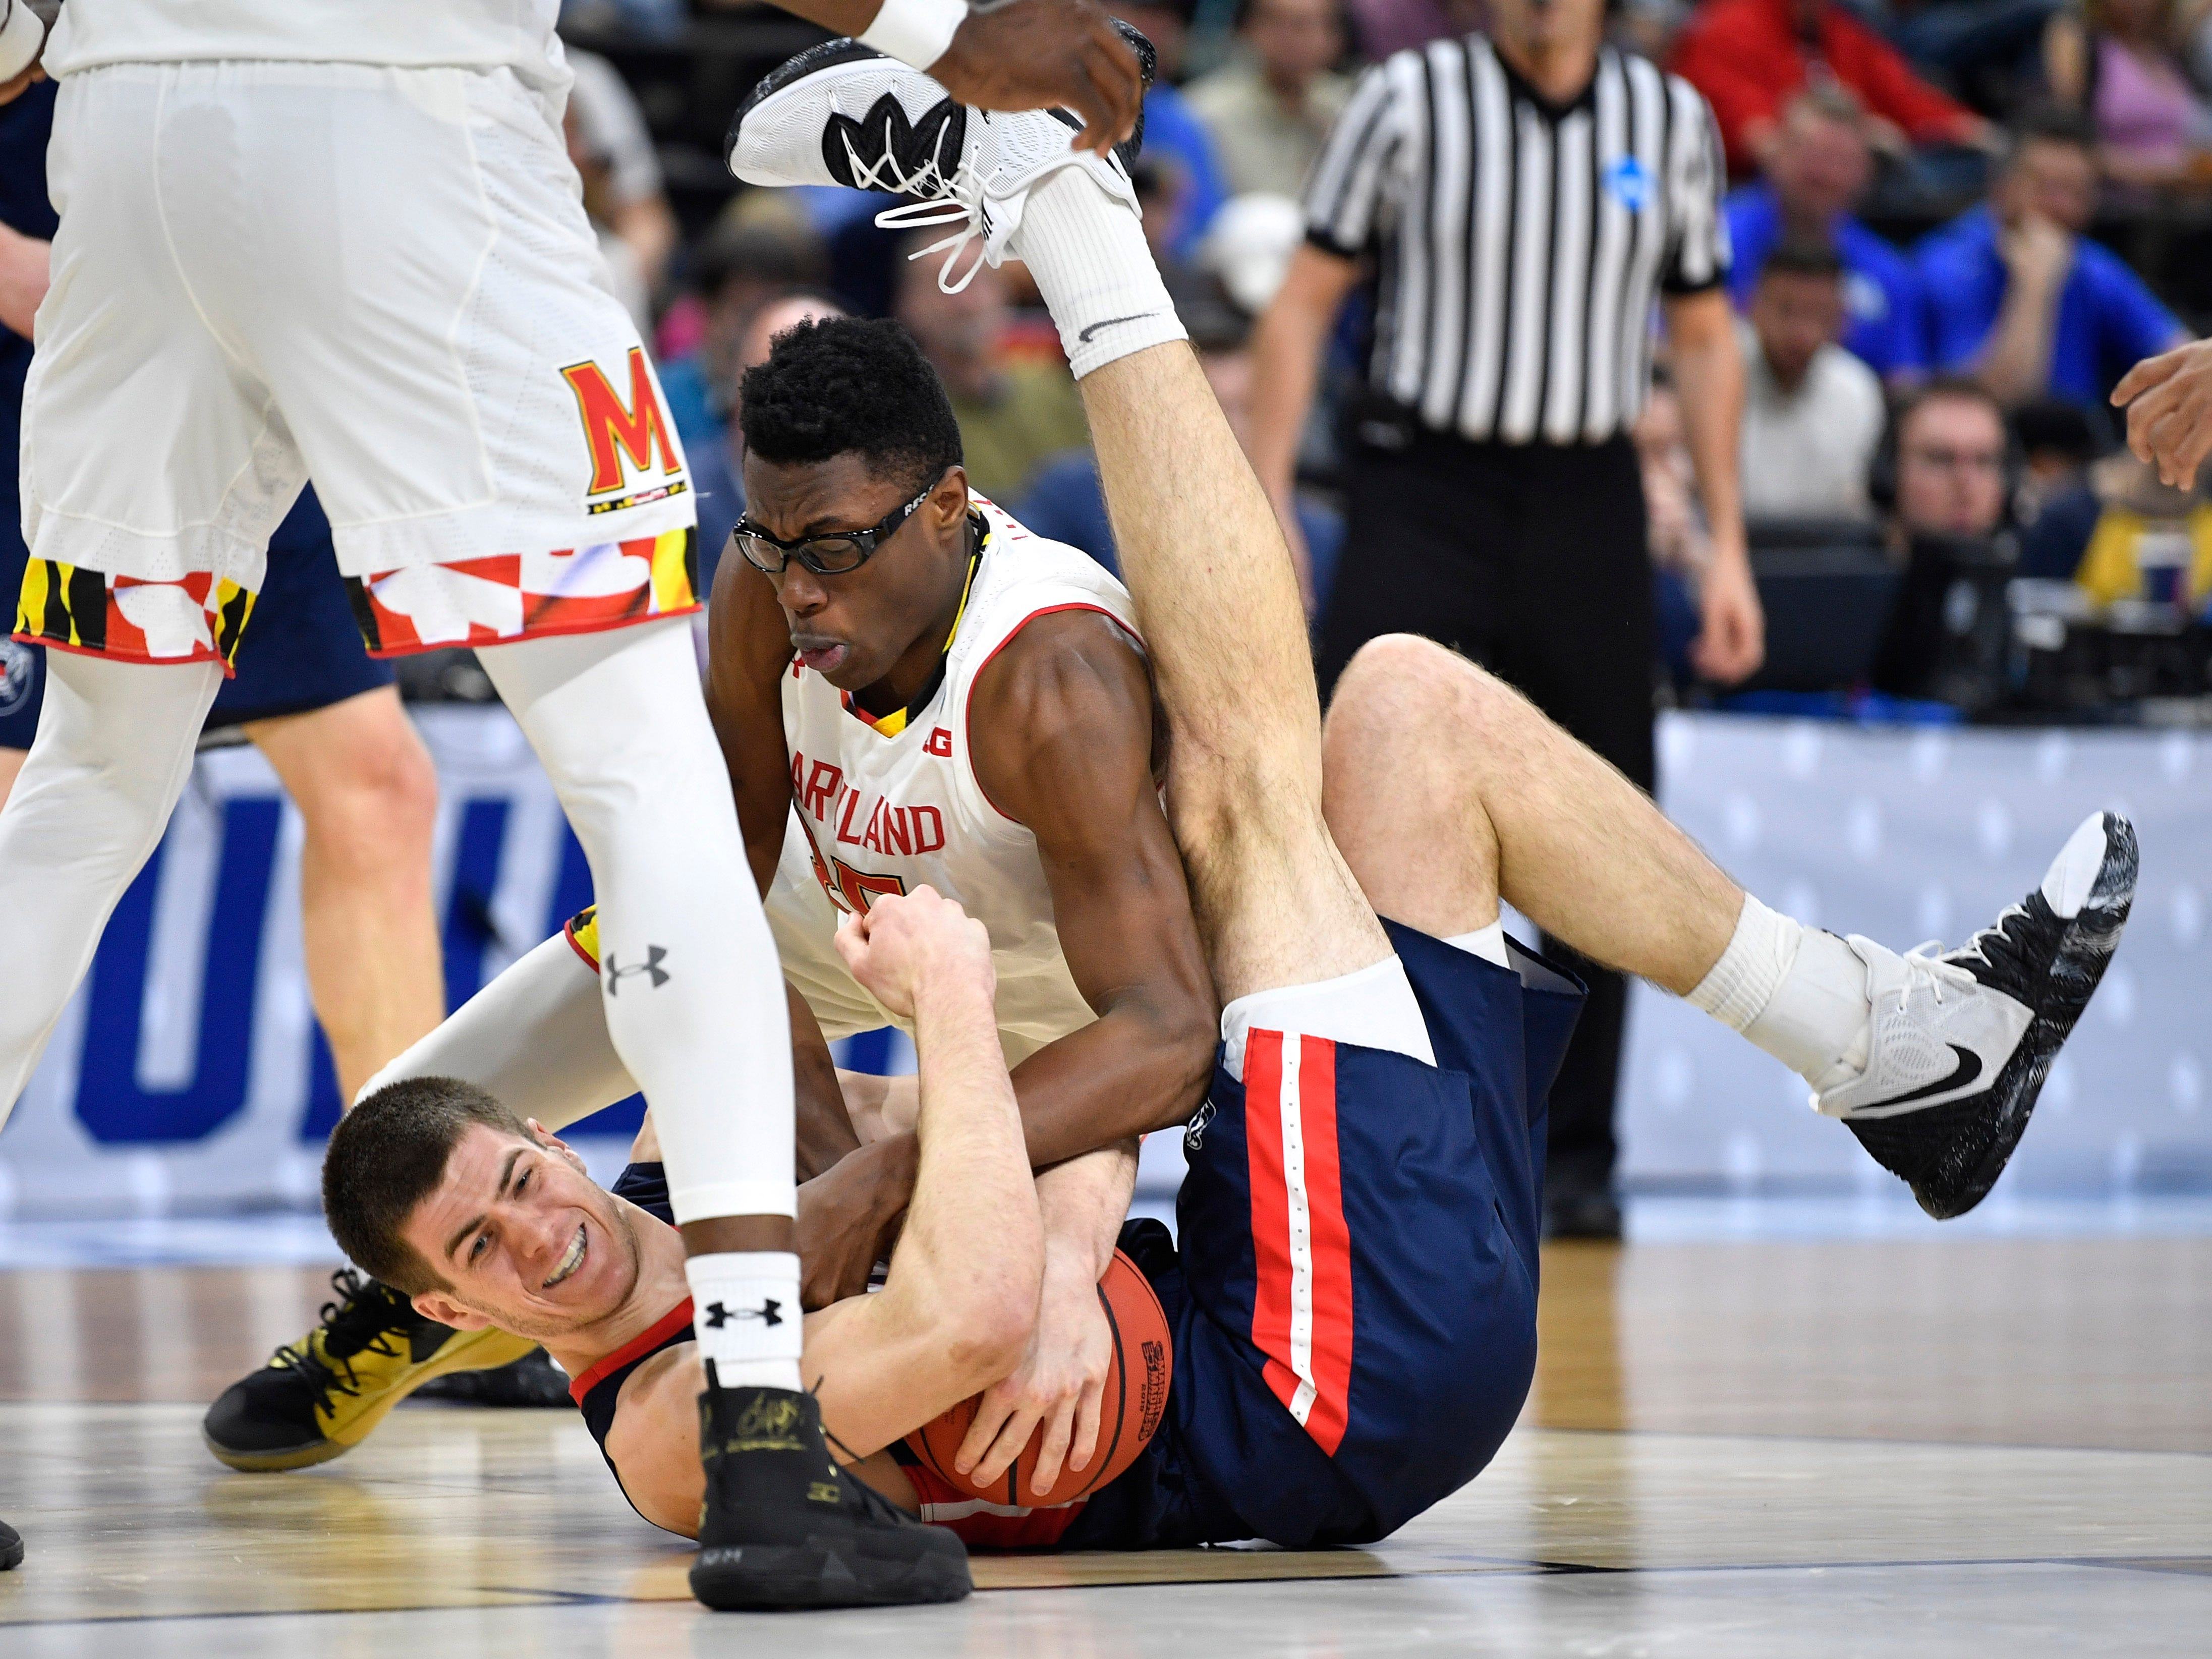 Belmont center Seth Adelsperger (50) and Maryland forward Jalen Smith (25) battle for the ball during the first half of the first-round NCAA college basketball tournament game at VyStar Veterans Memorial Arena in Jacksonville, Fla., Thursday, March 21, 2019.